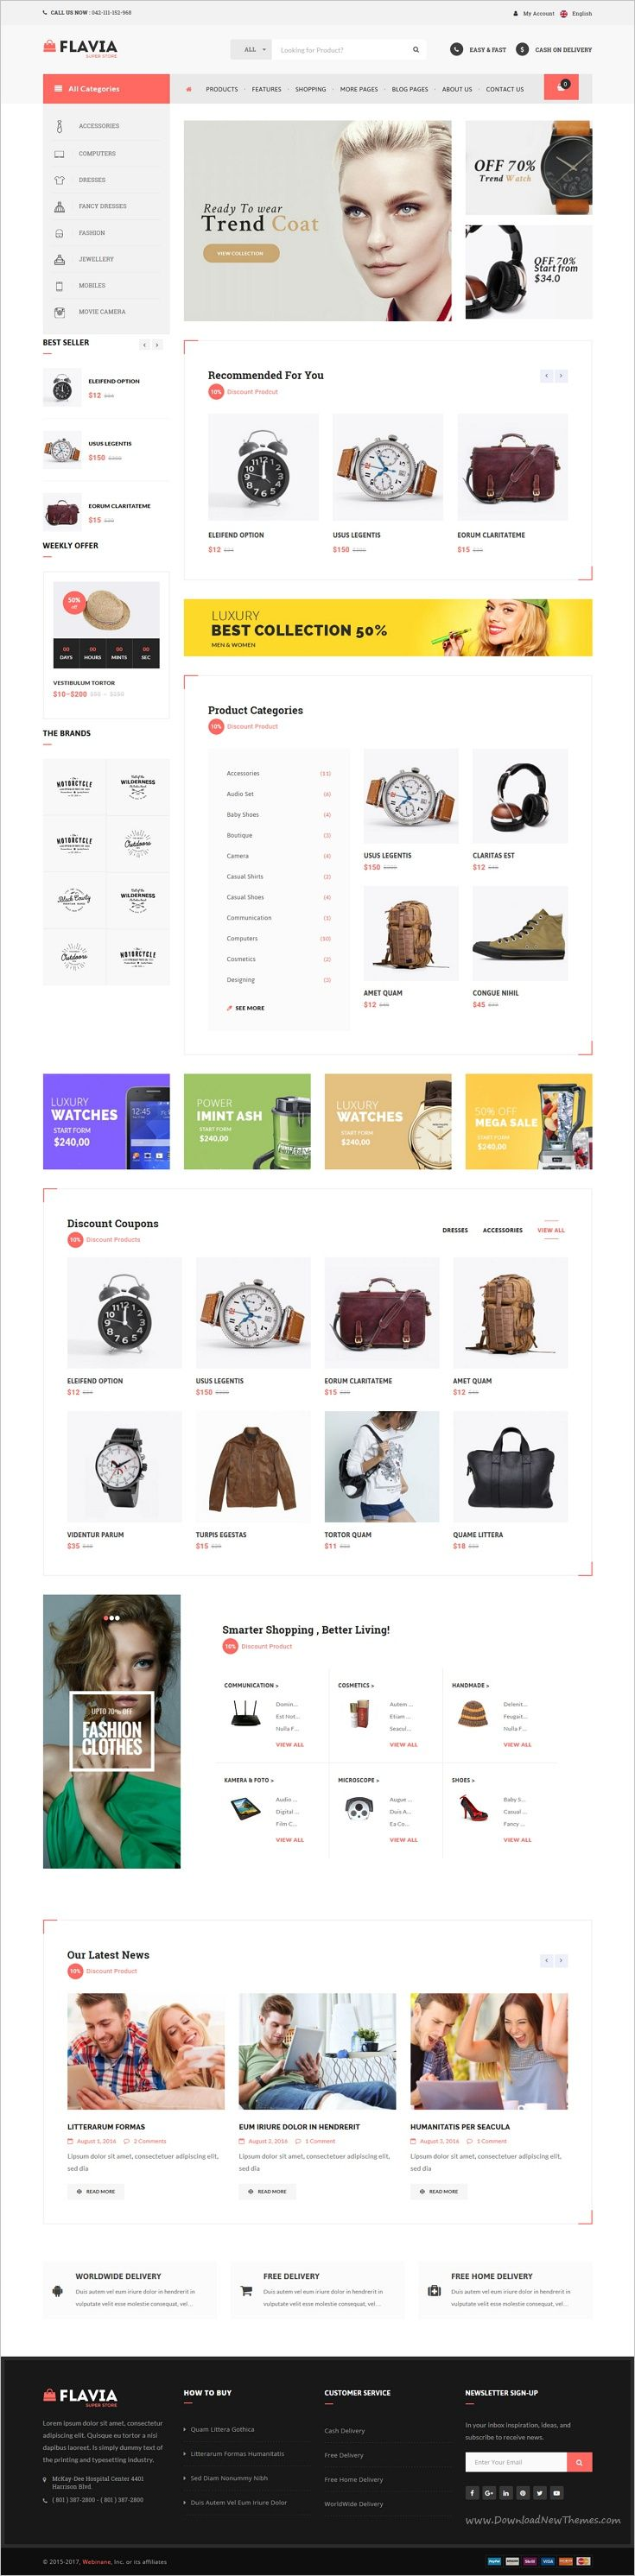 Flavia is a wonderful #responsive WooCommerce #WordPress theme for multipurpose #eCommerce website with 7+ pre-built homepages download now➩ https://themeforest.net/item/flavia-download-responsive-woocommerce-wordpress-theme/18030189?ref=Datasata